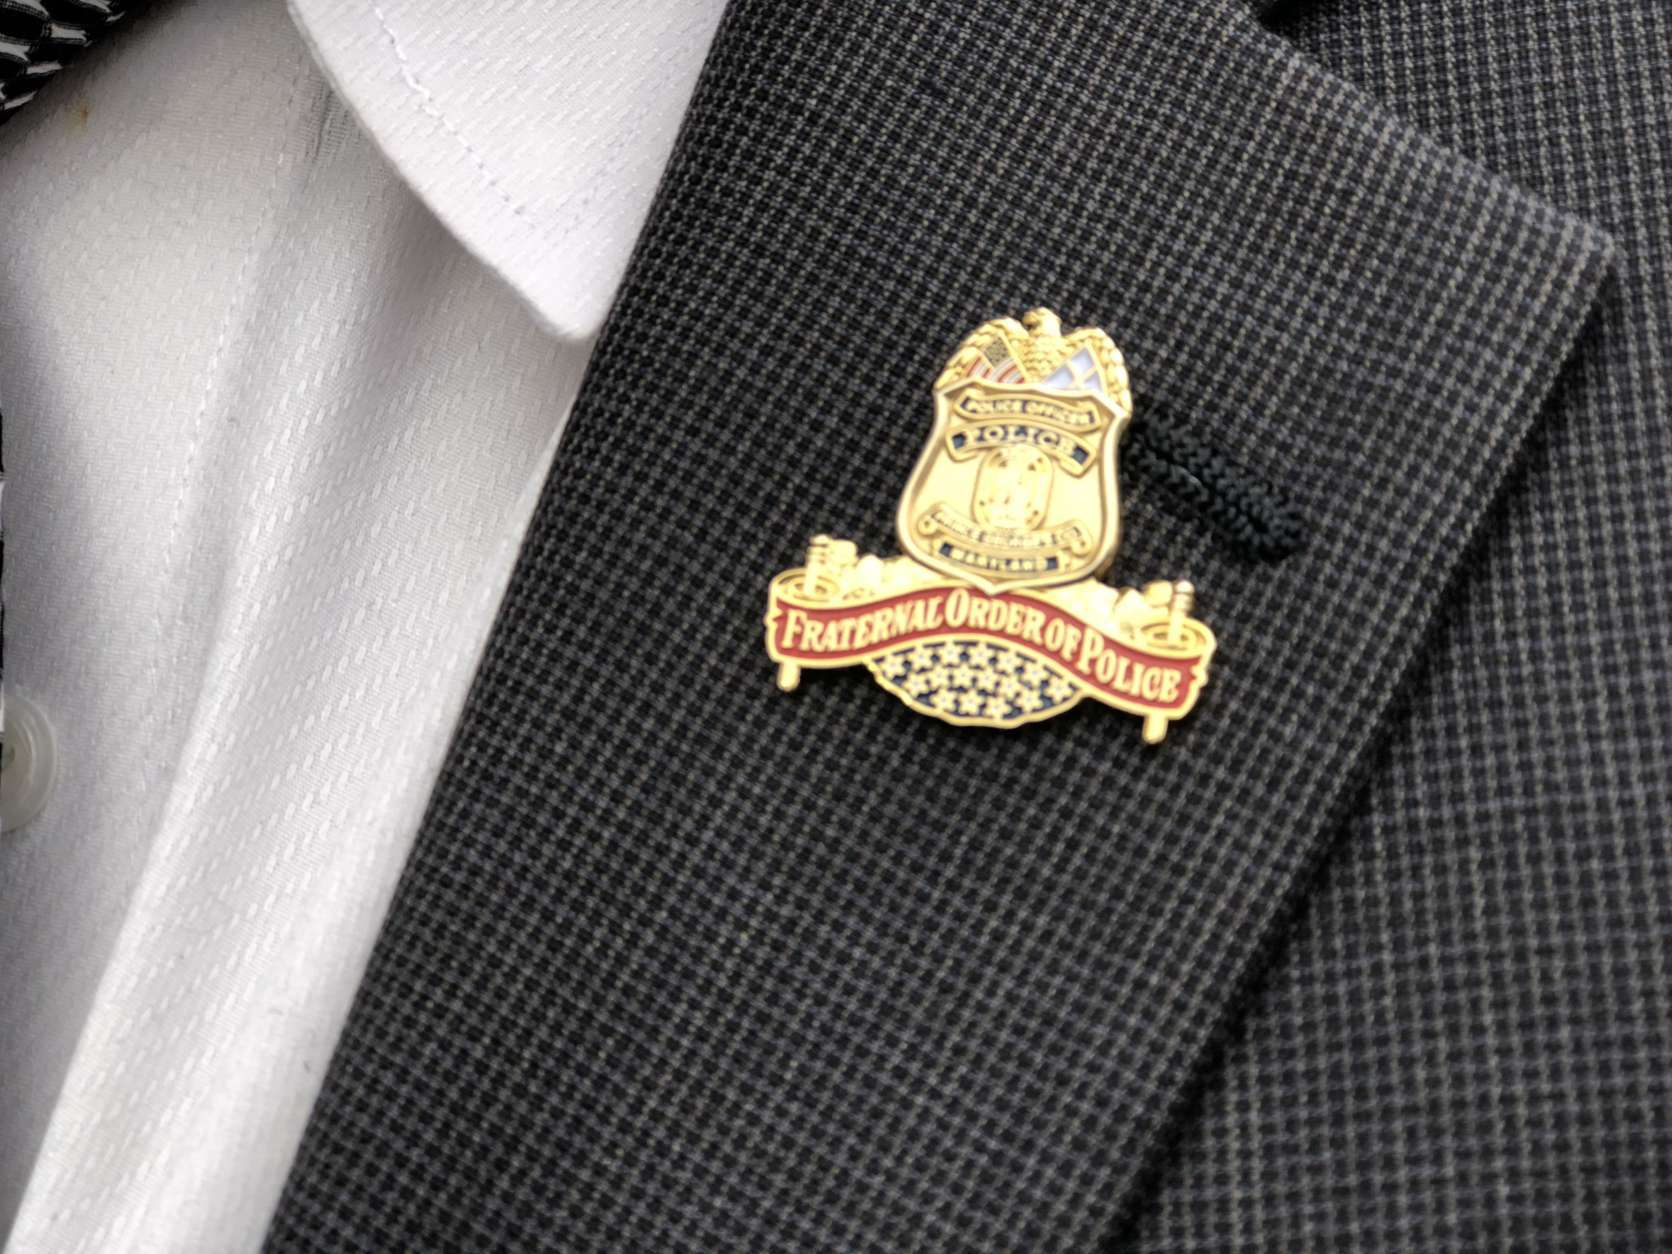 A Fraternal Order of Police pin worn at the funeral for Cpl. Mujahid Ramzziddin. (WTOP/Kate Ryan)